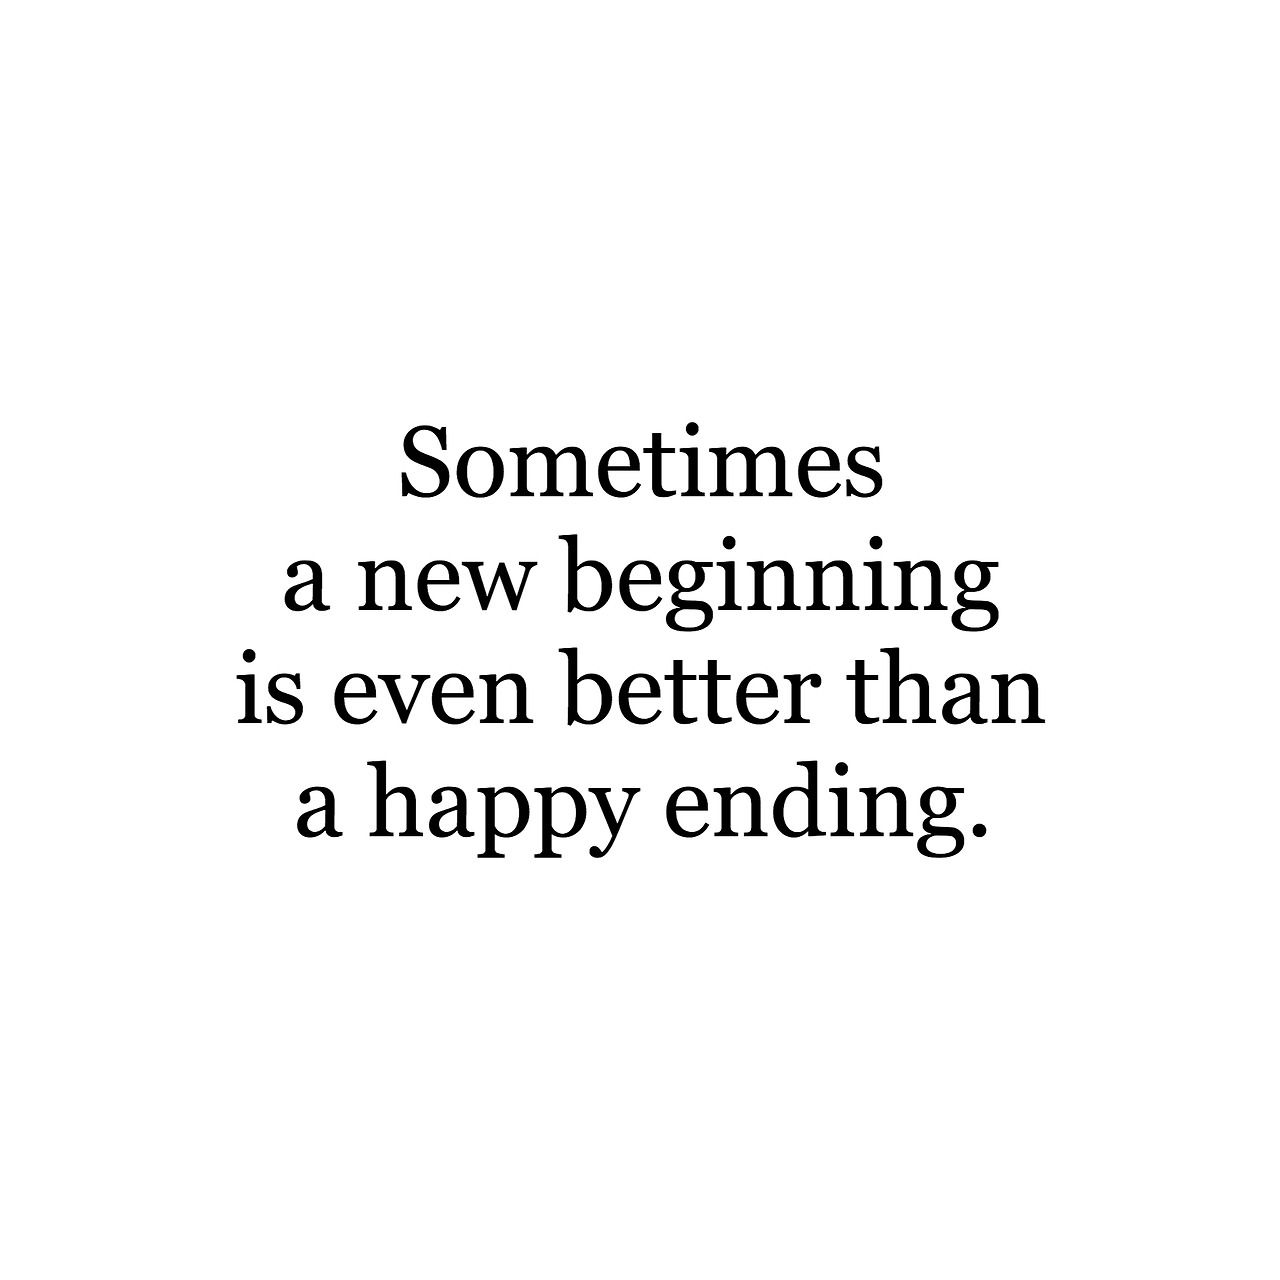 Sometimes A New Beginning Is Even Better Than A Happy Ending Ending Quotes Wisdom Quotes Happy Endings Quotes